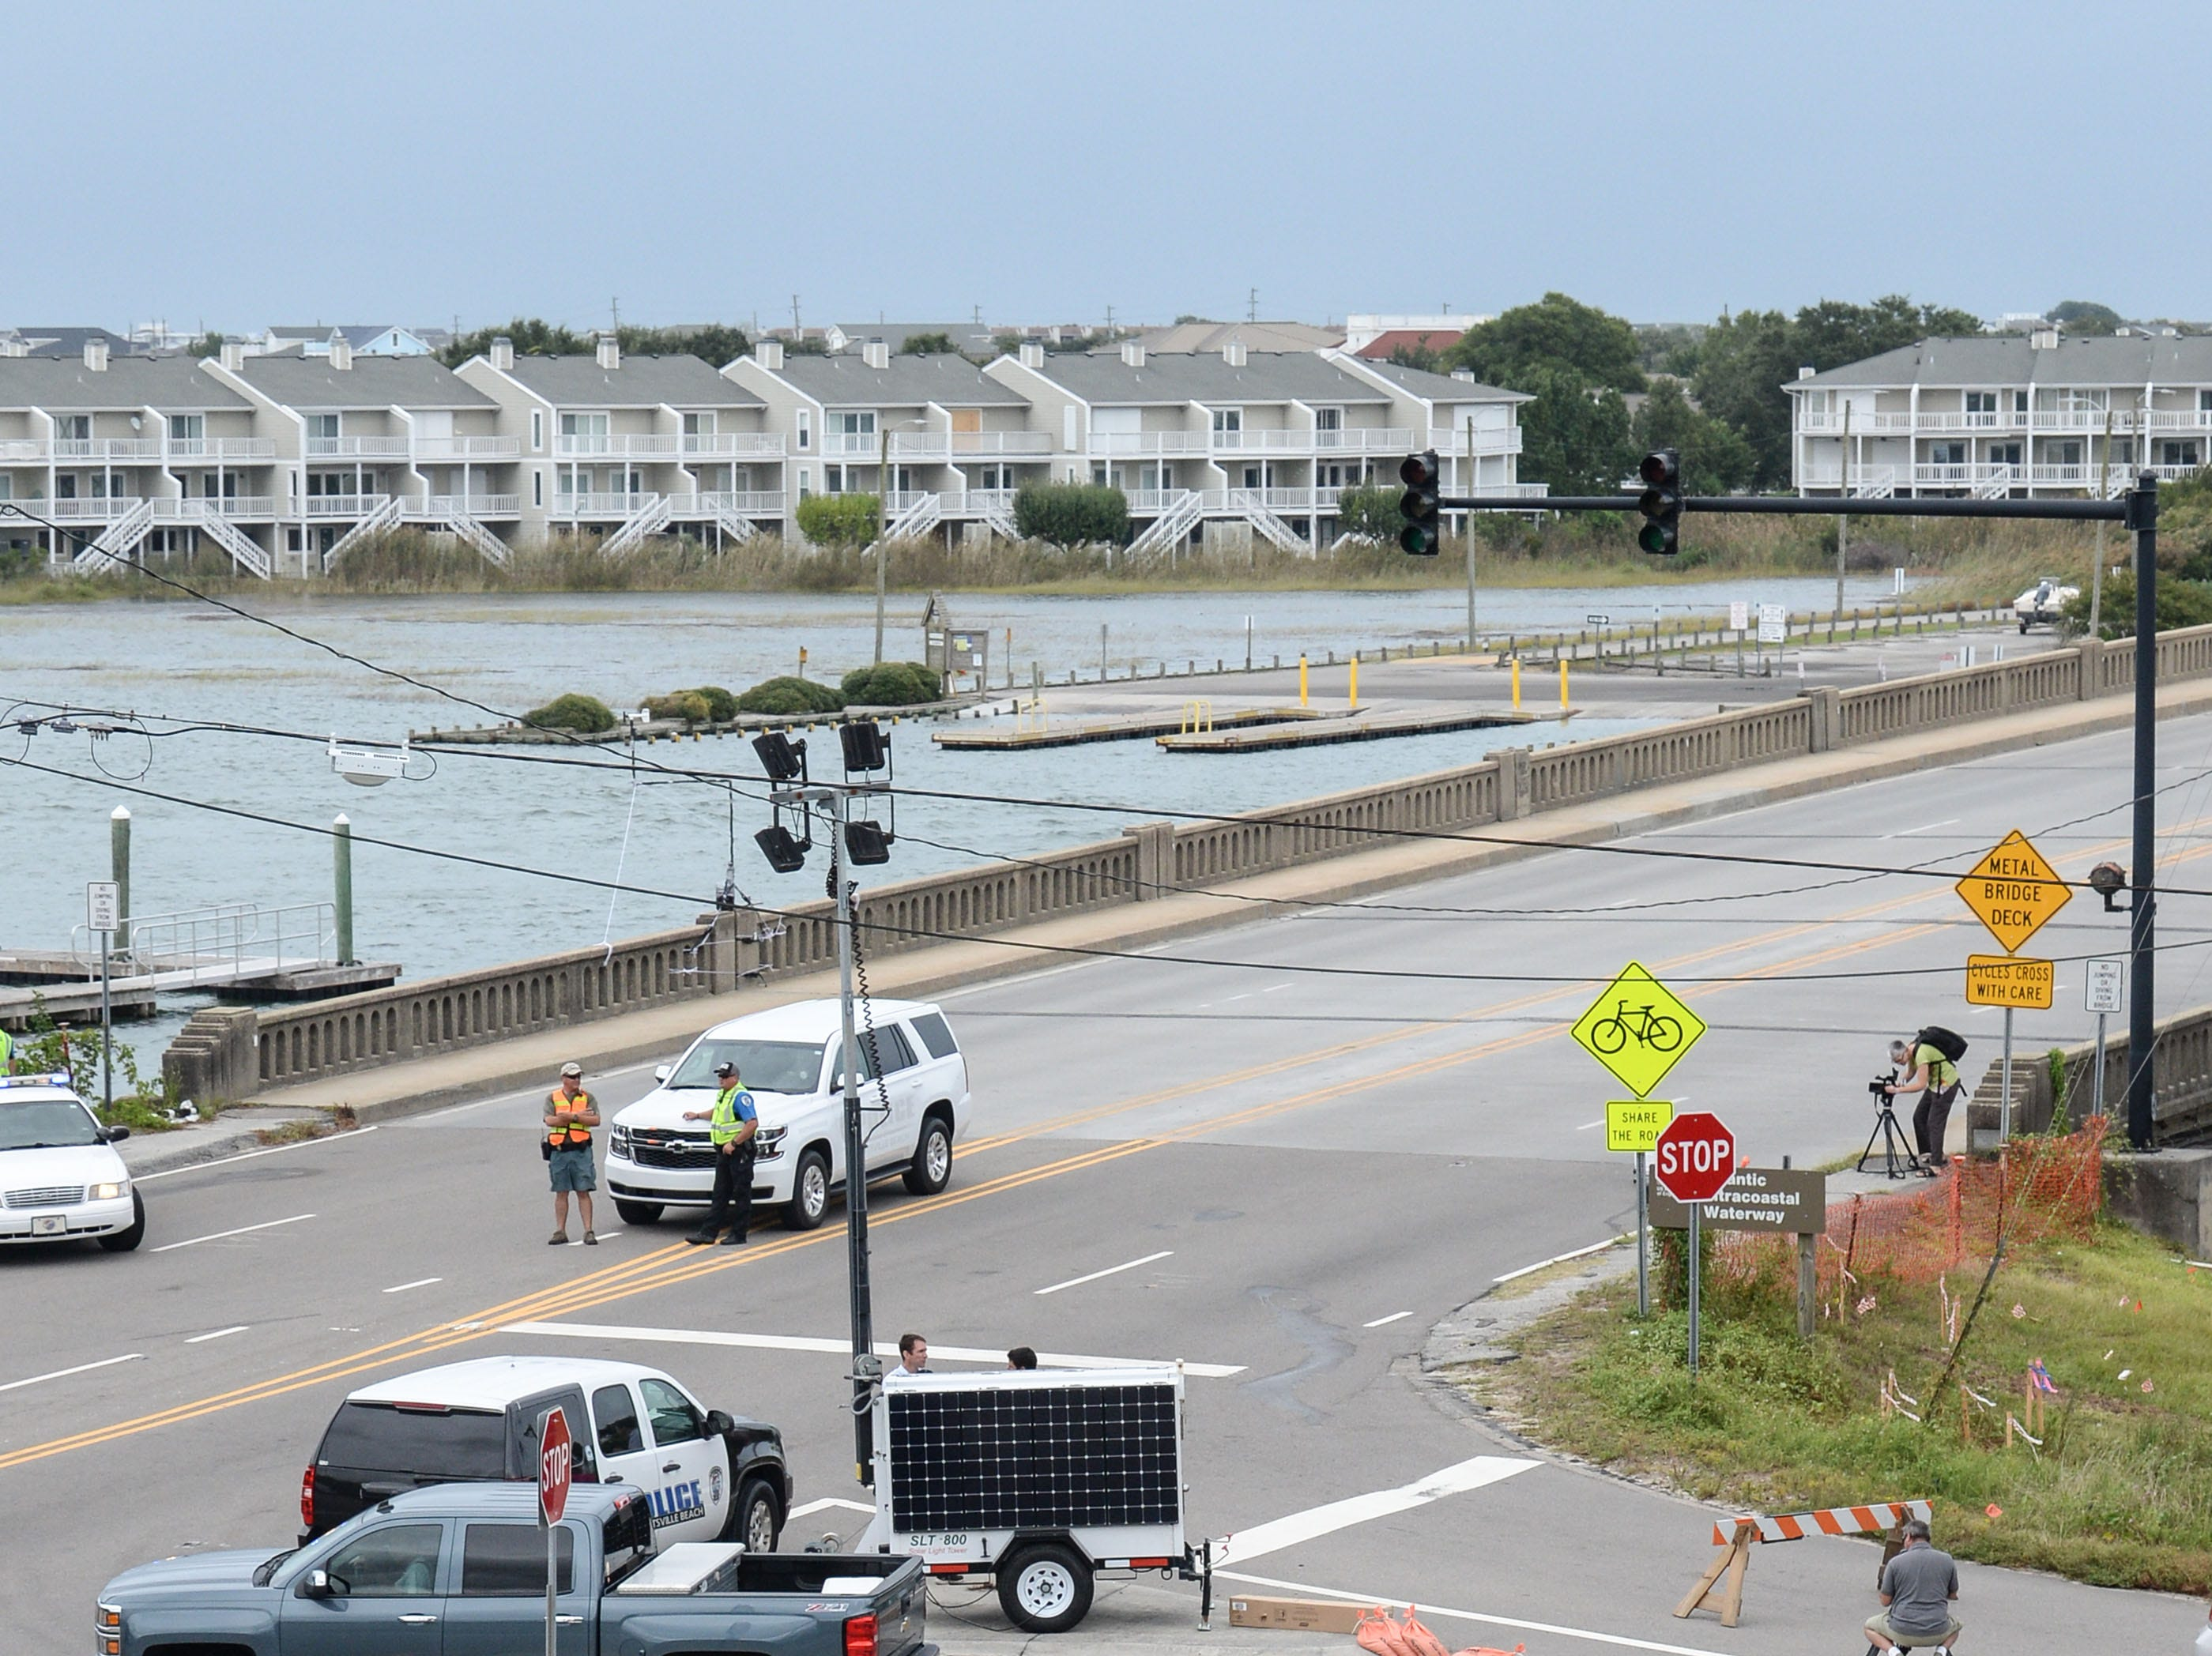 Two people walk their dog by a roadblock at a bridge to Wrightsville Beach and the Waterway Lodge in Wilmington, North Carolina on Thursday, September 13, 2018. Freed arrived Tuesday. (Ken Ruinard / Greenville News / Gannett USA Today Network / 2018 )